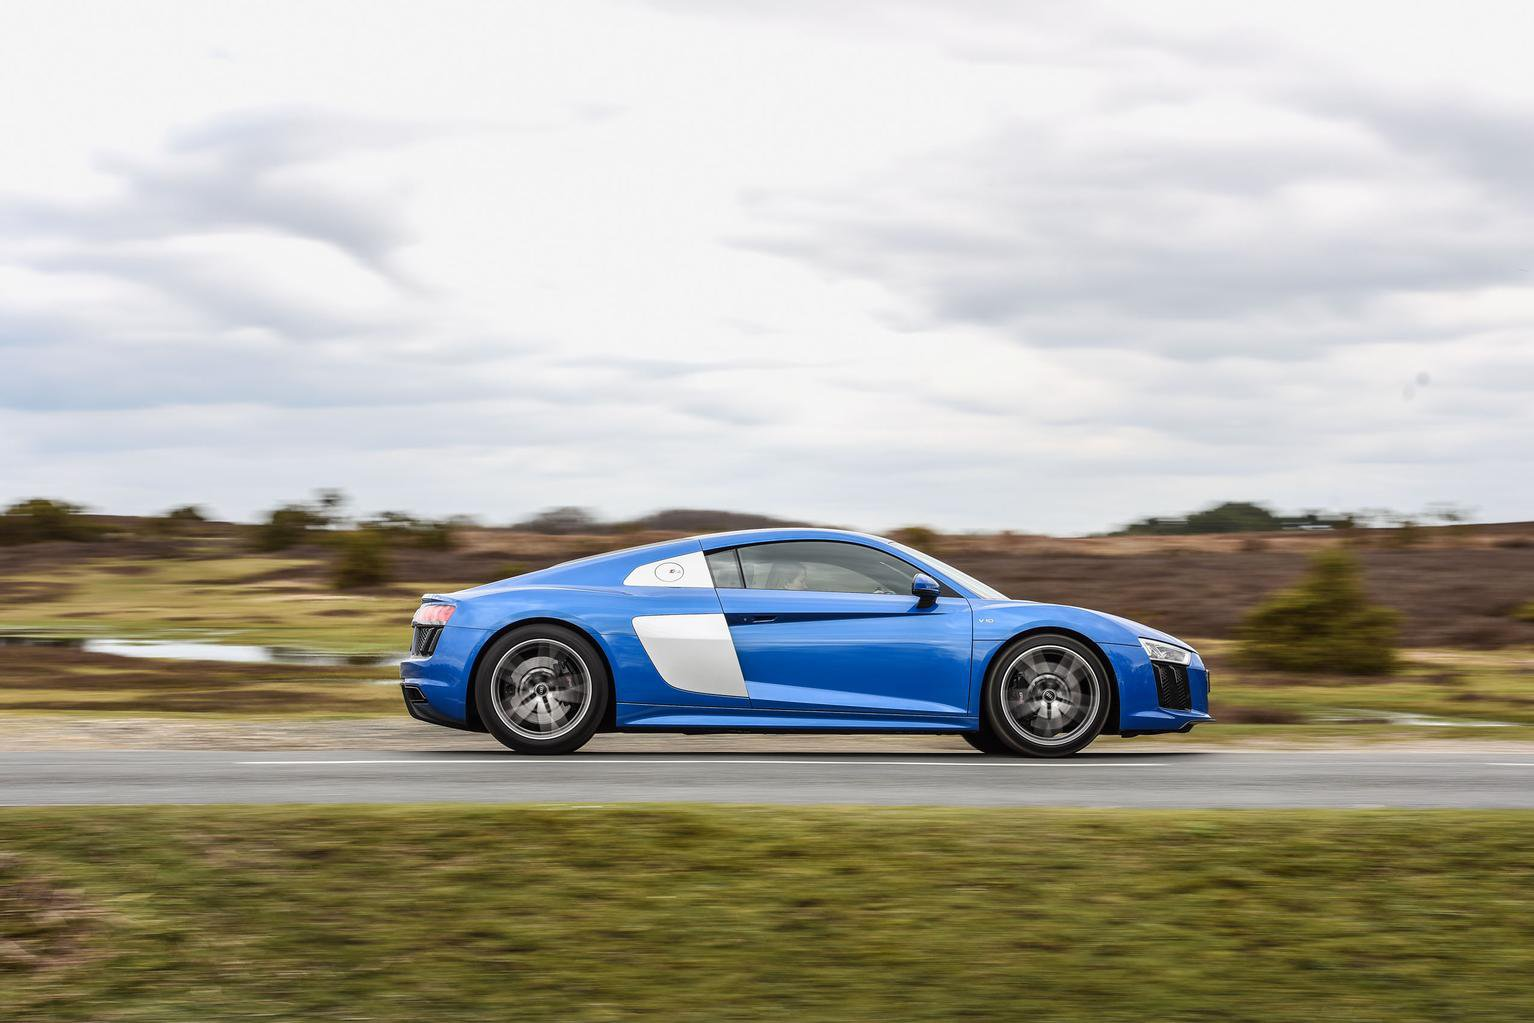 Audi R8 vs Porsche 911 Turbo